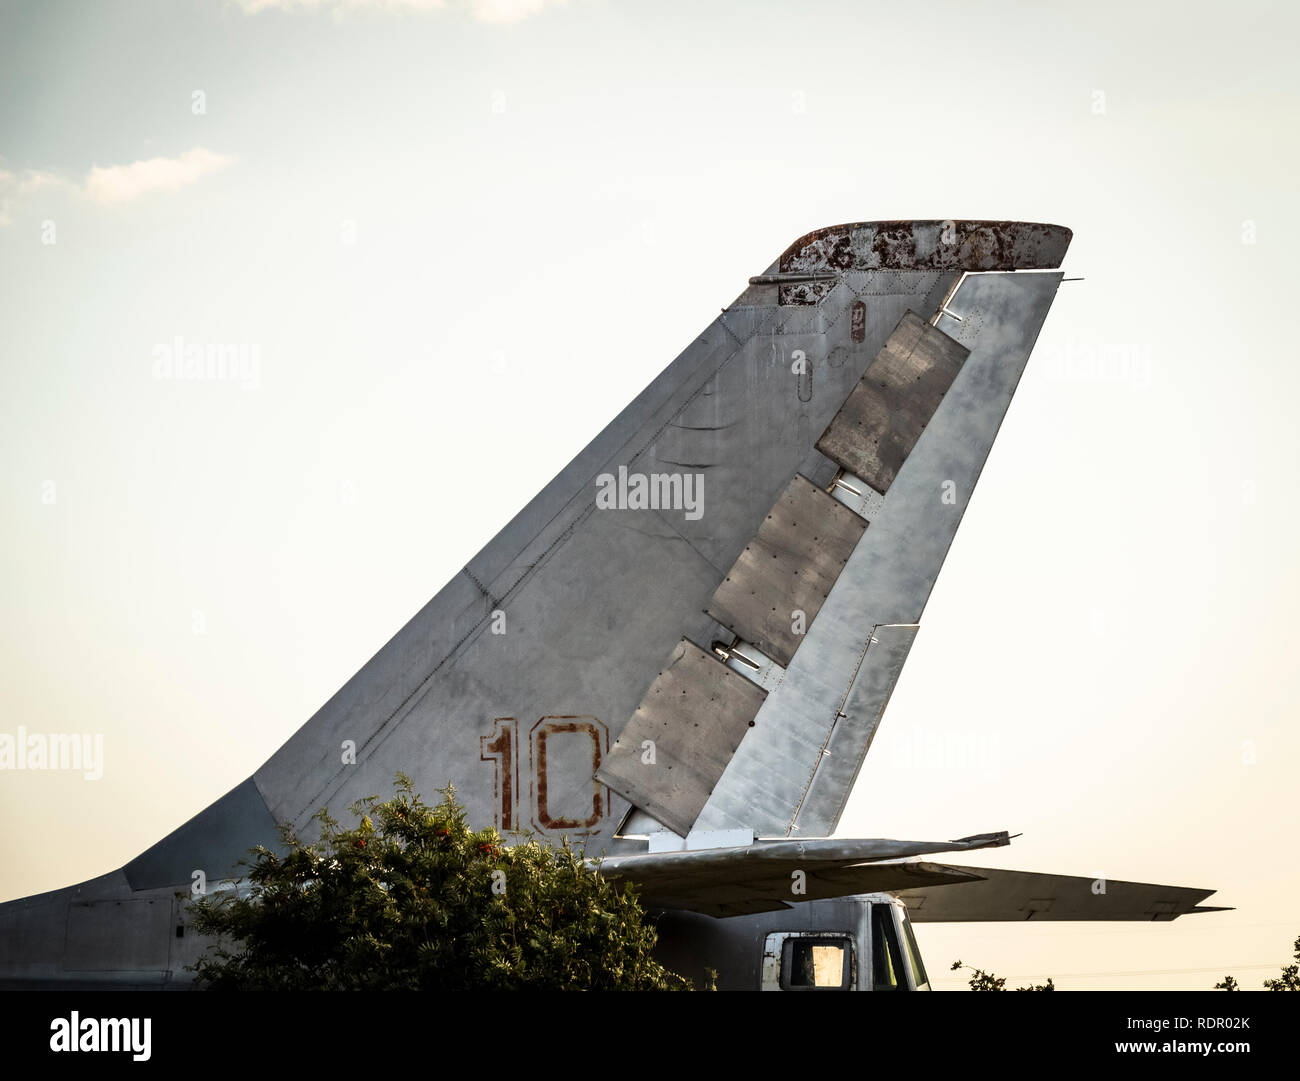 The tail of an old military aircraft standing in the park. - Stock Photo